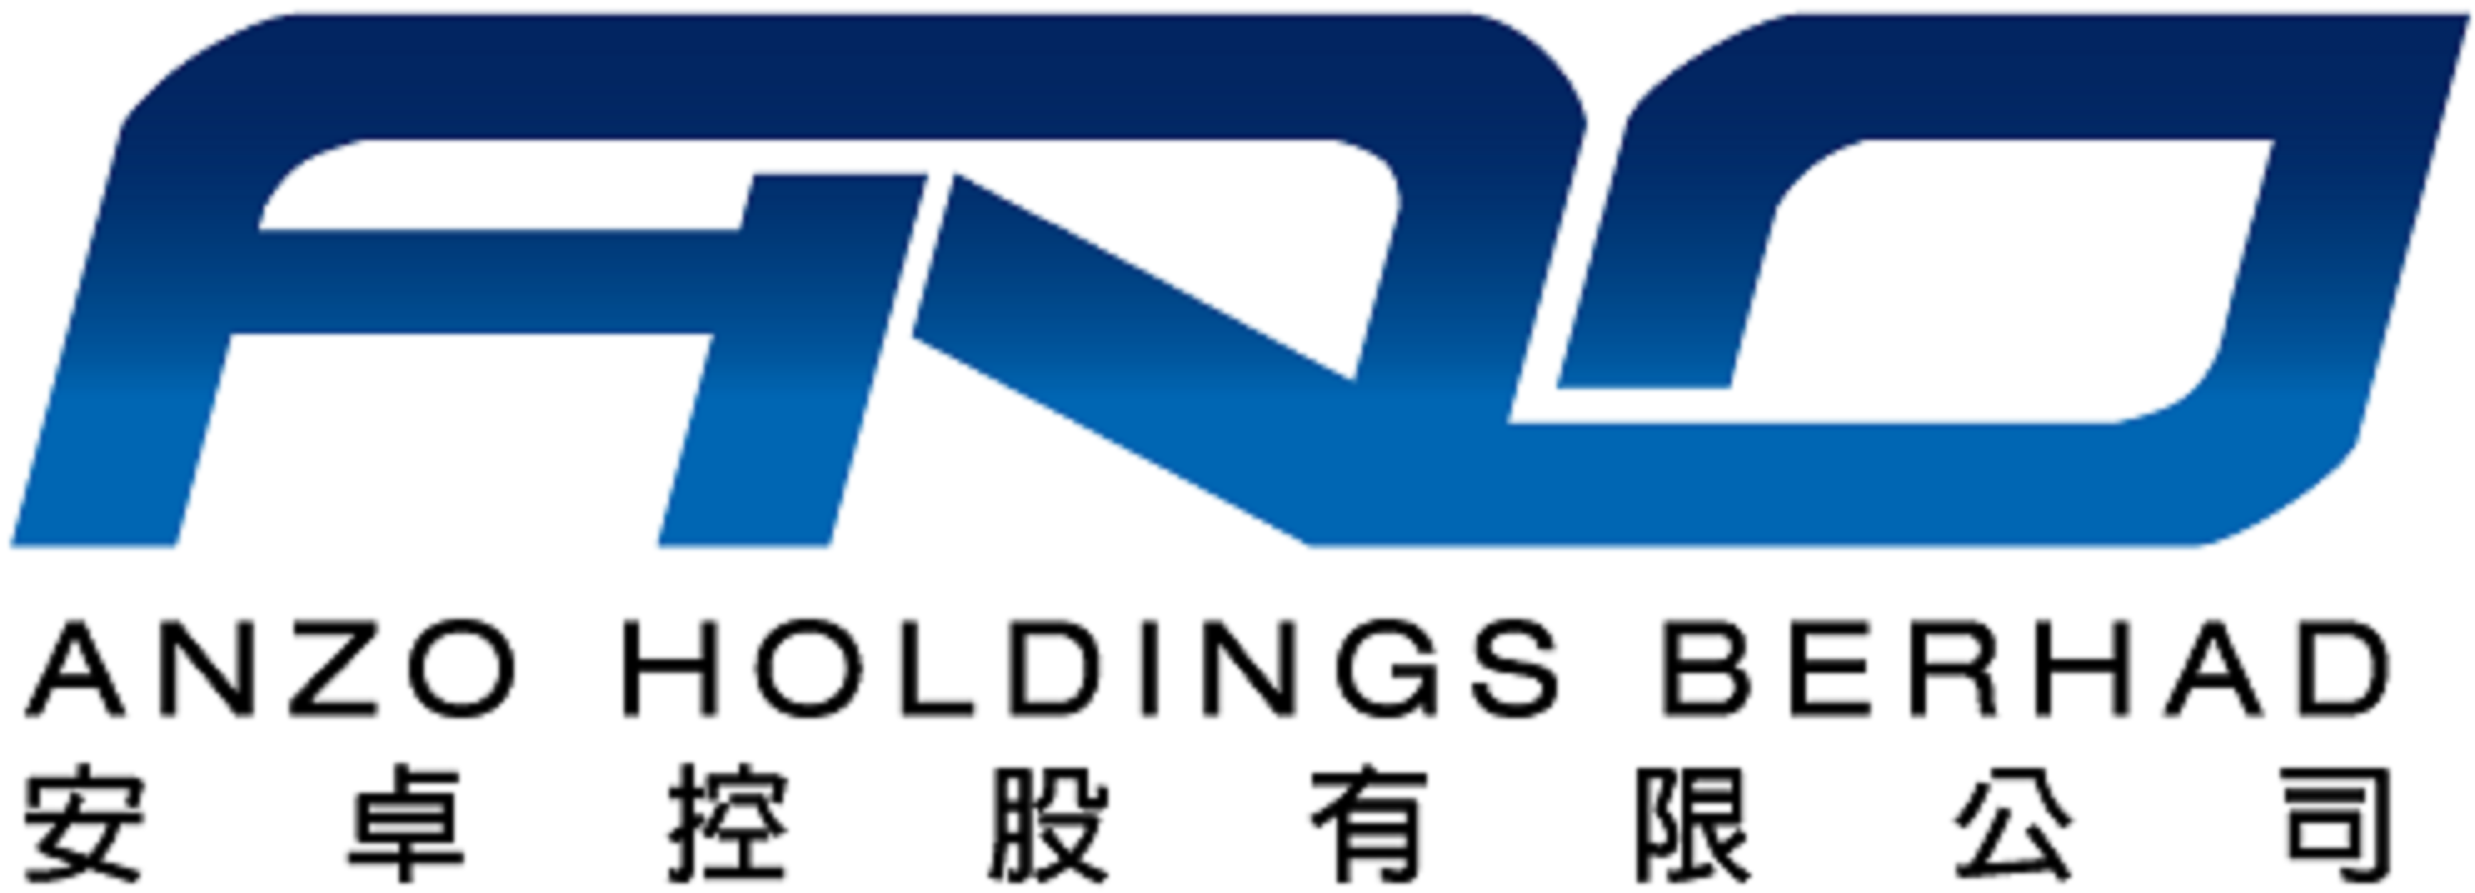 Anzo Holdings Bhd Invest RM50 Million To Buy Glove Manufacturing Company in Selangor!